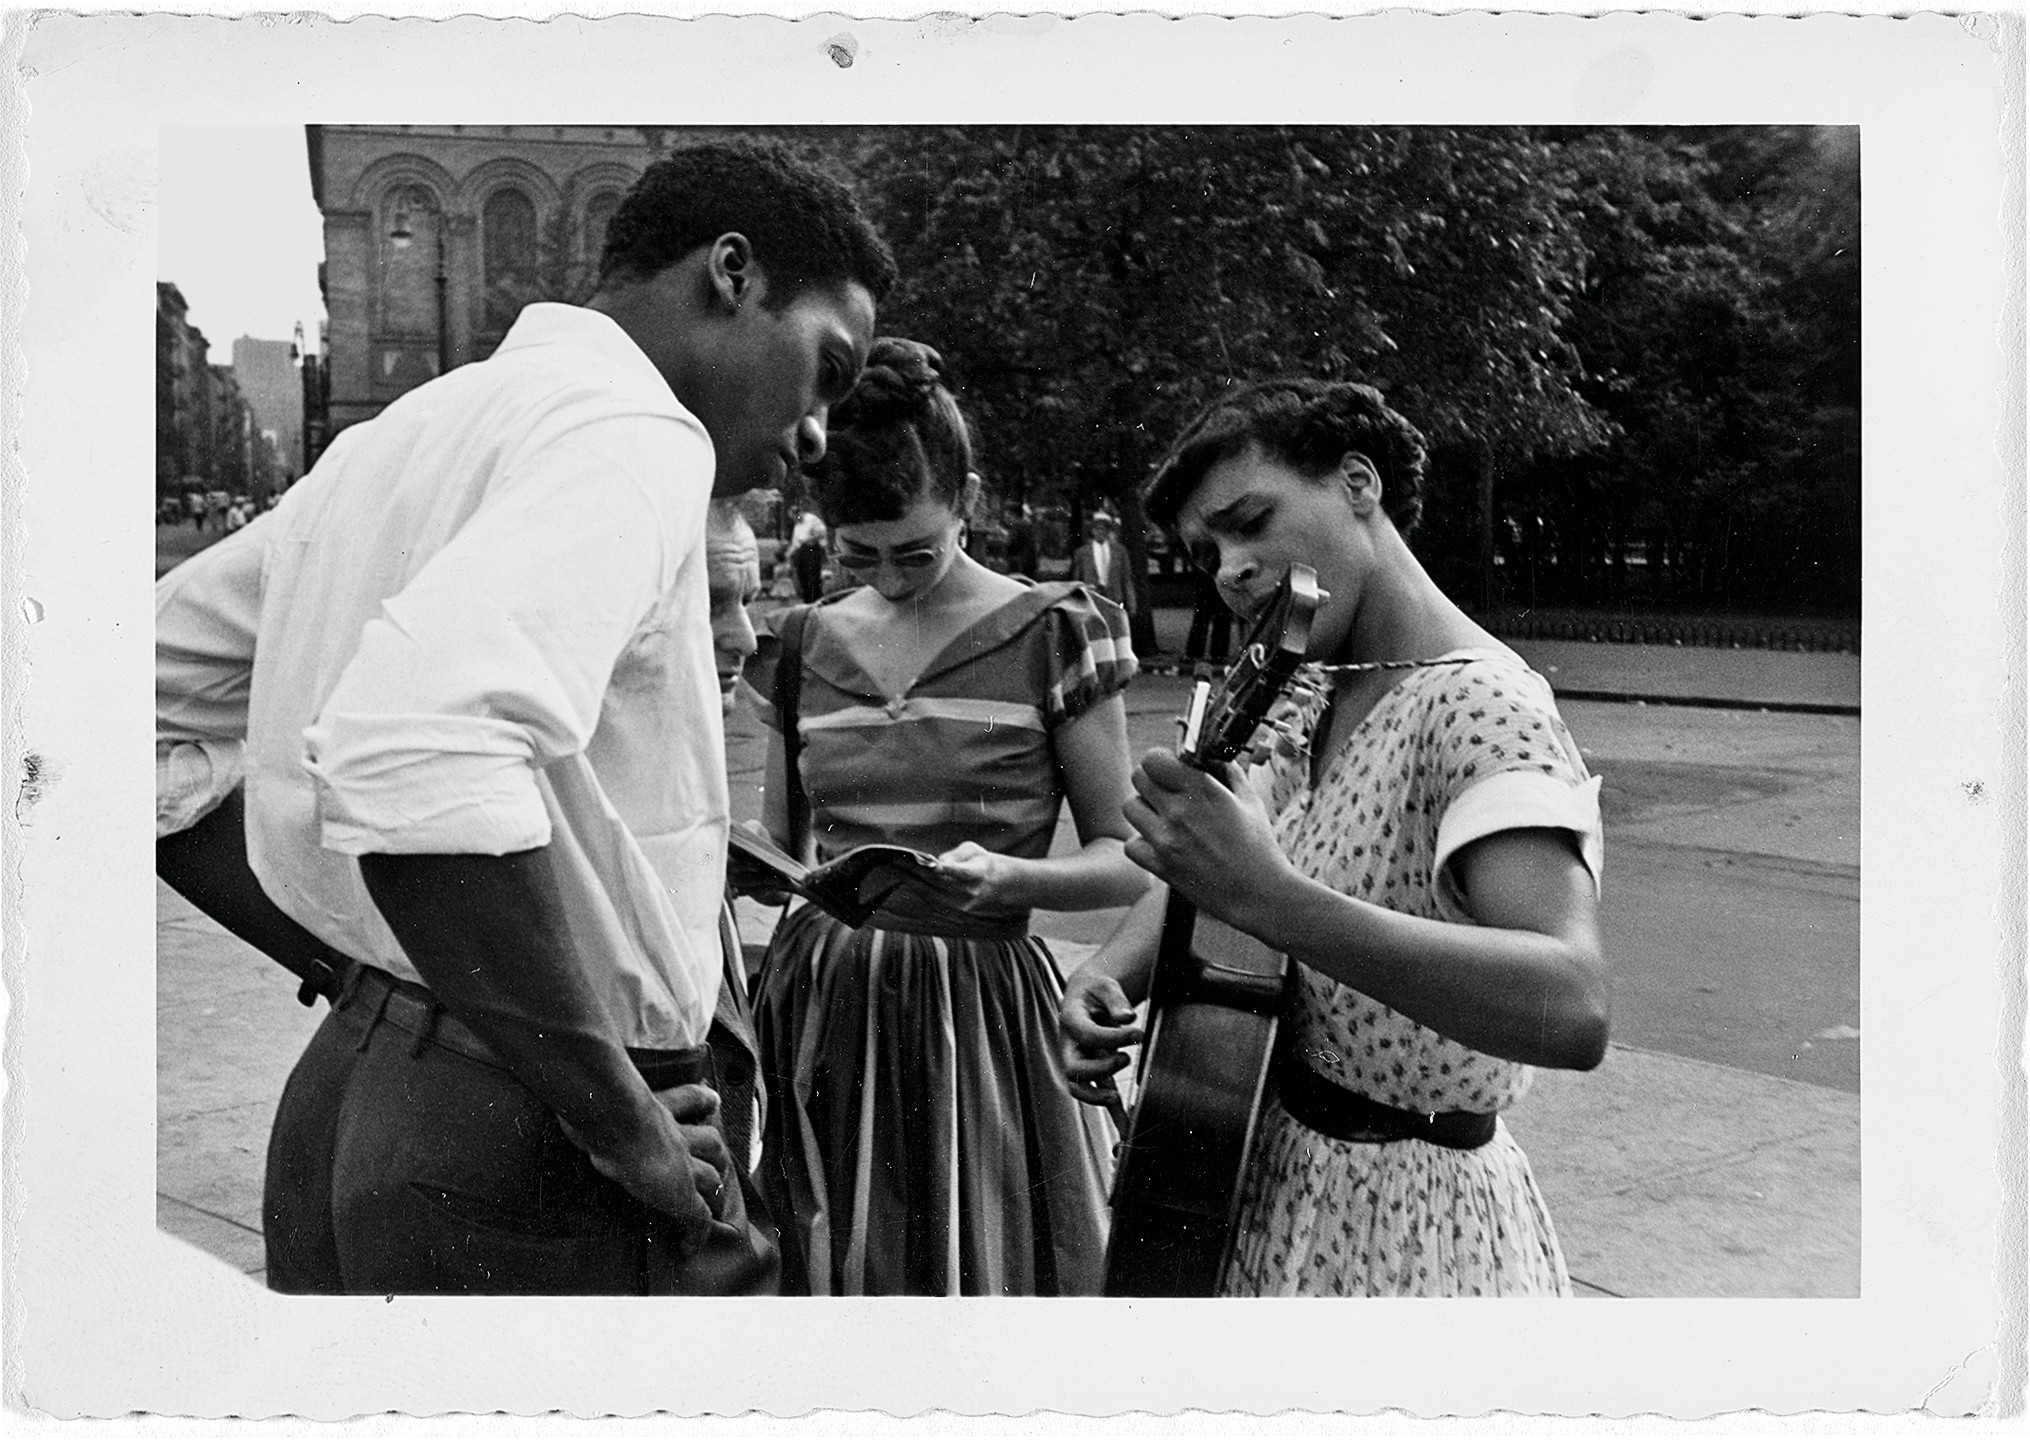 Charles White, Musicians in Washington Square Park, 1950s, private collection, Altadena, © The Charles White Archives, digital image © Museum of Modern Art, New York